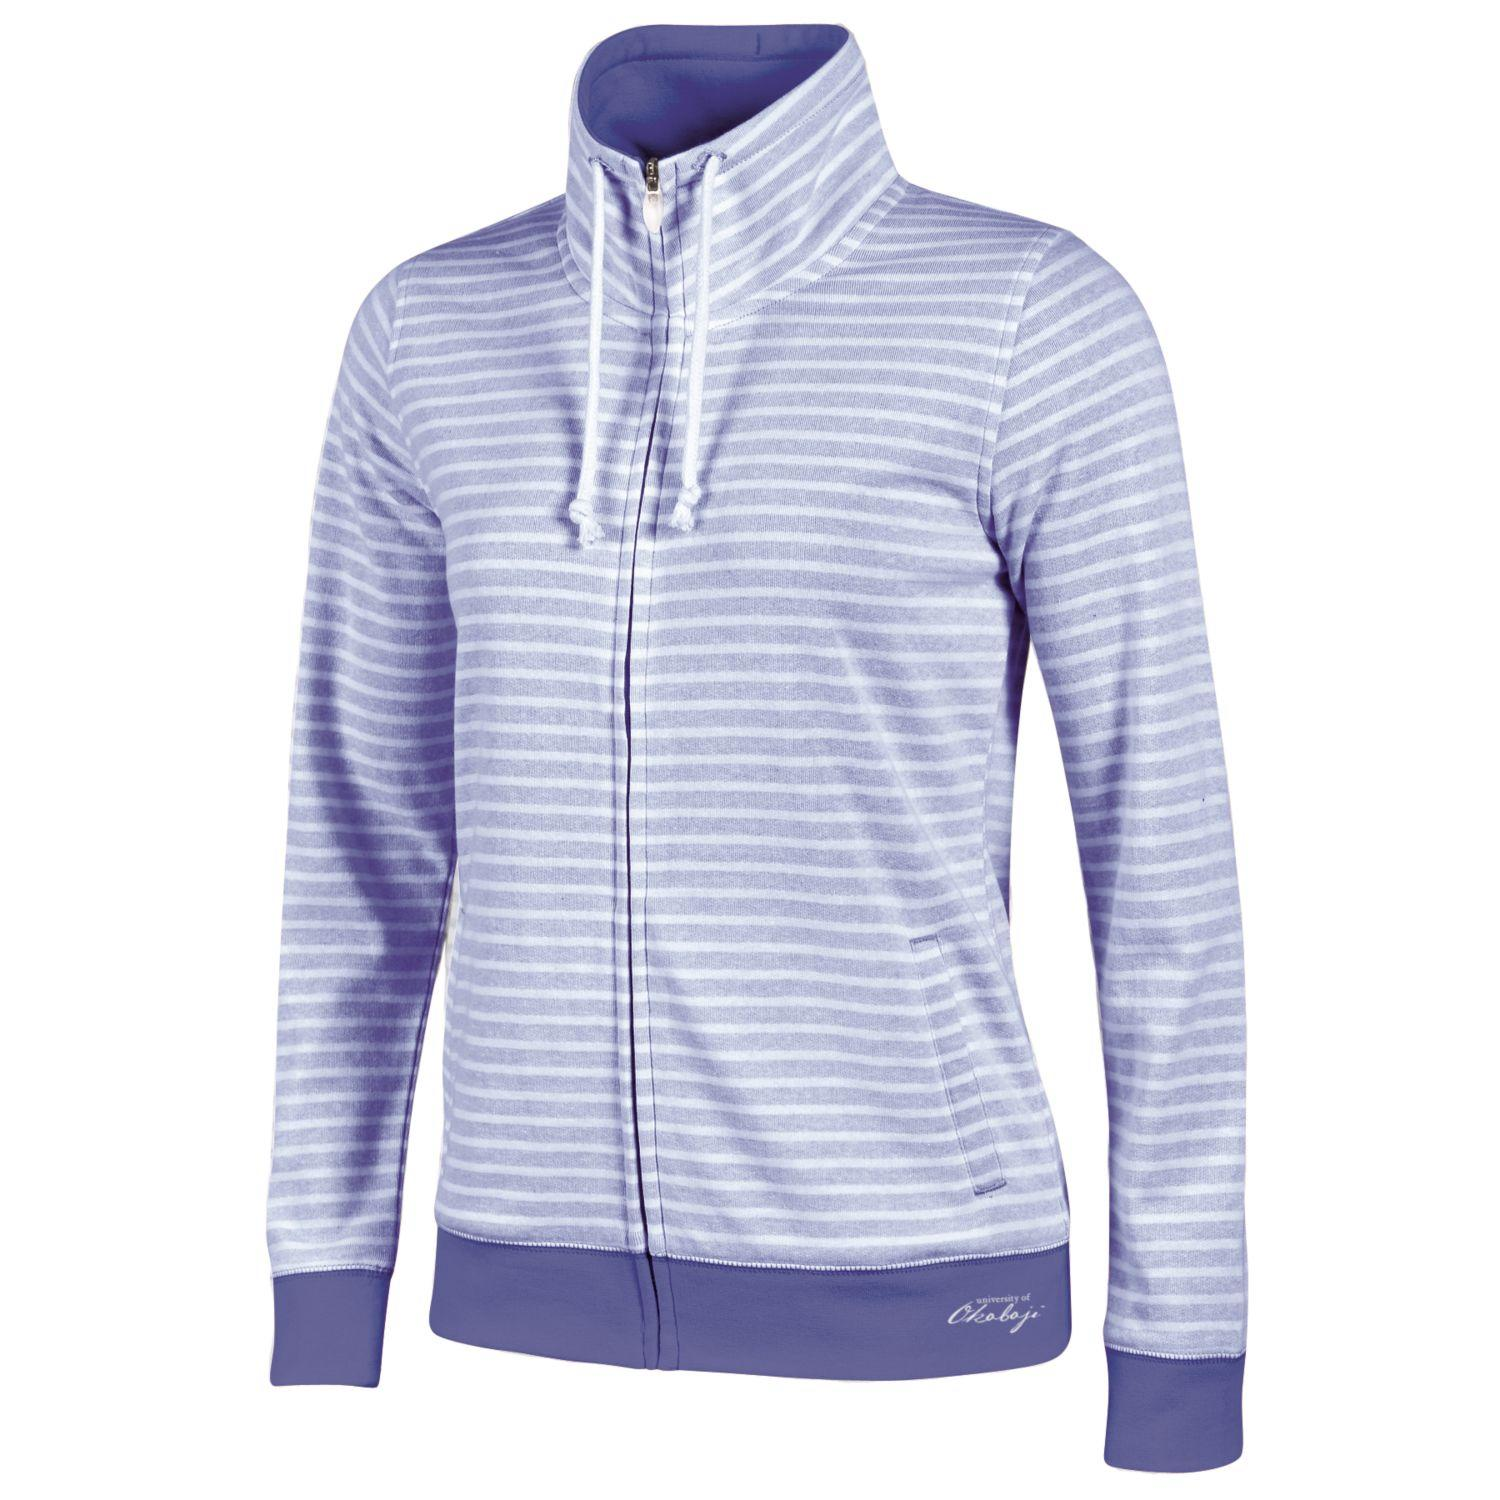 University of Okoboji Resort Full Zip - Lavender/White Stripe